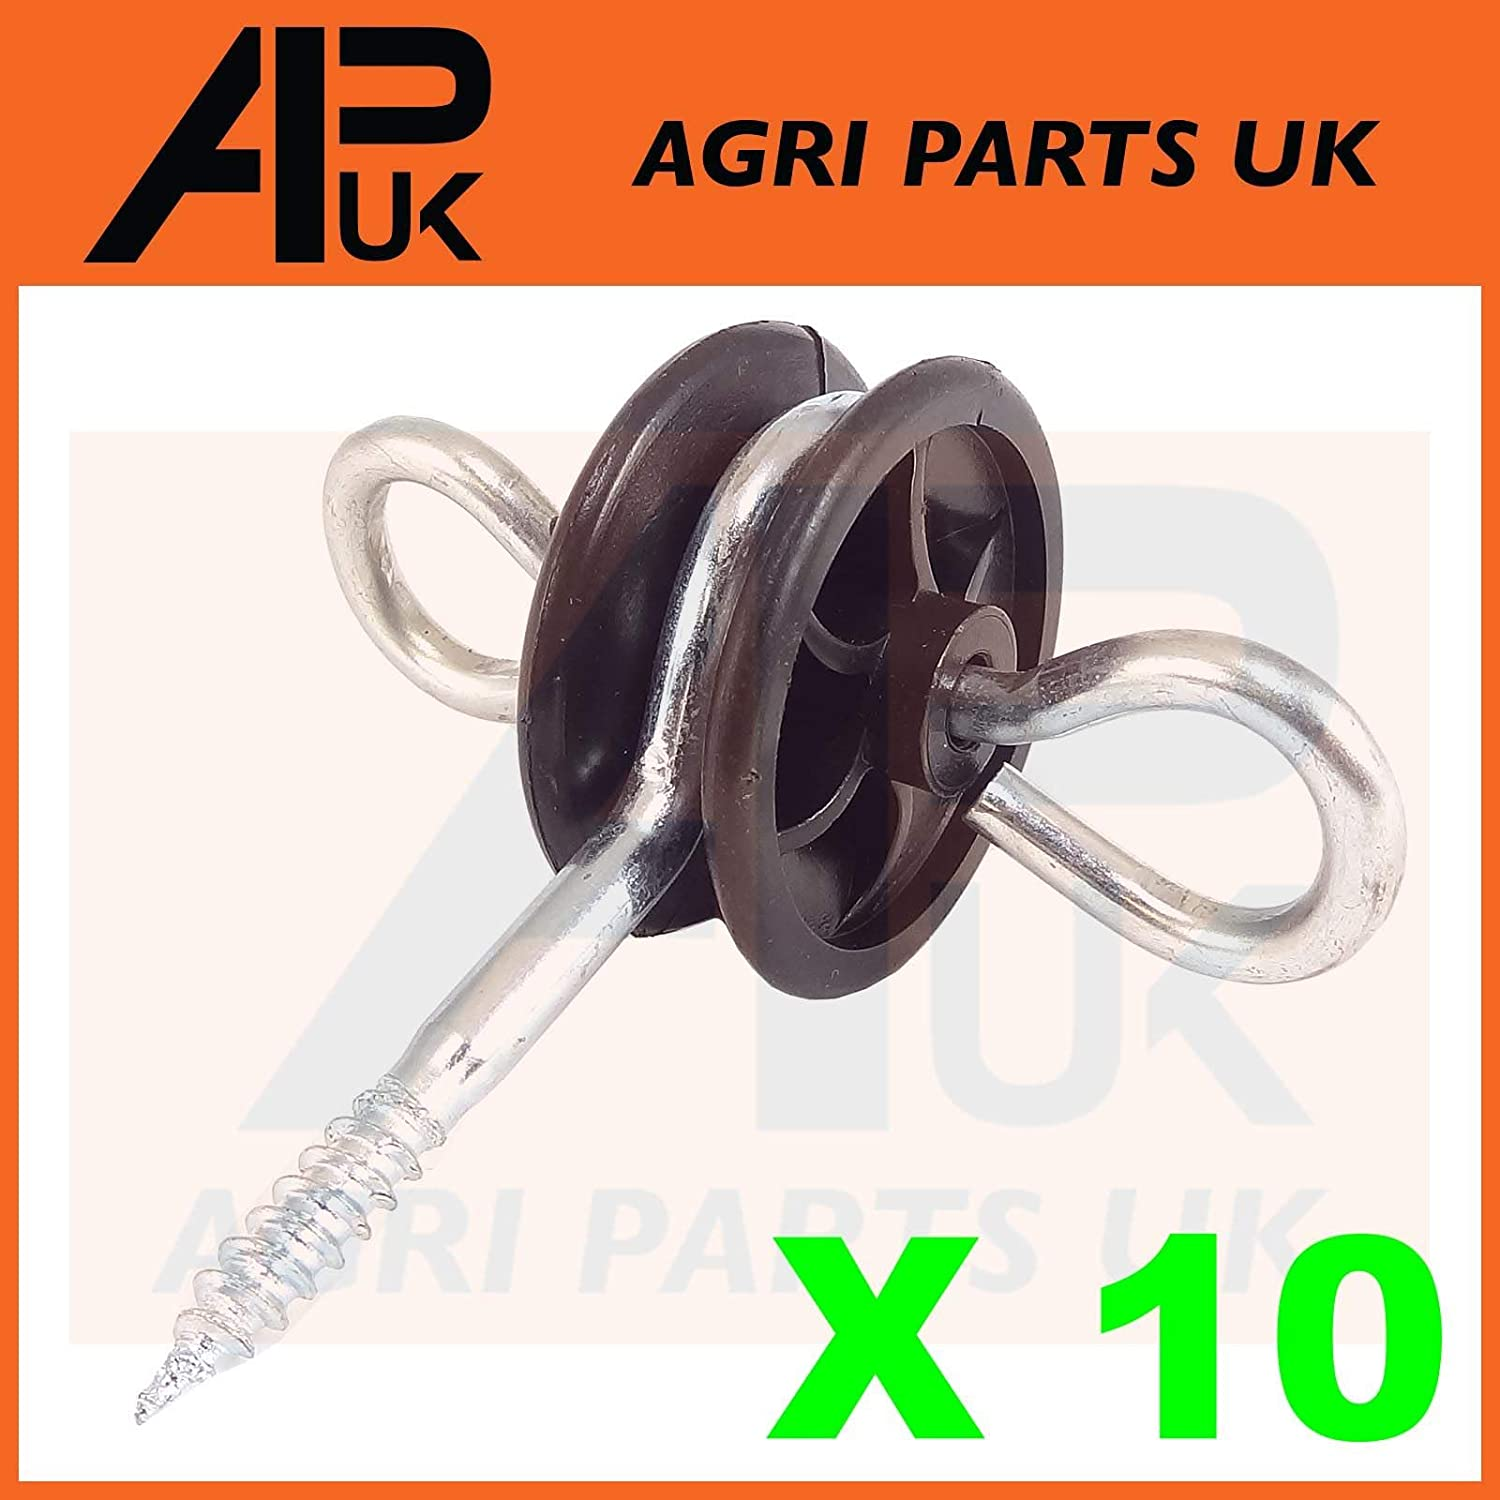 APUK 10 x Electric Fence Gate Handle Insulators Anchors Tape Screw Poly Rope Fencing Agri Parts UK Ltd